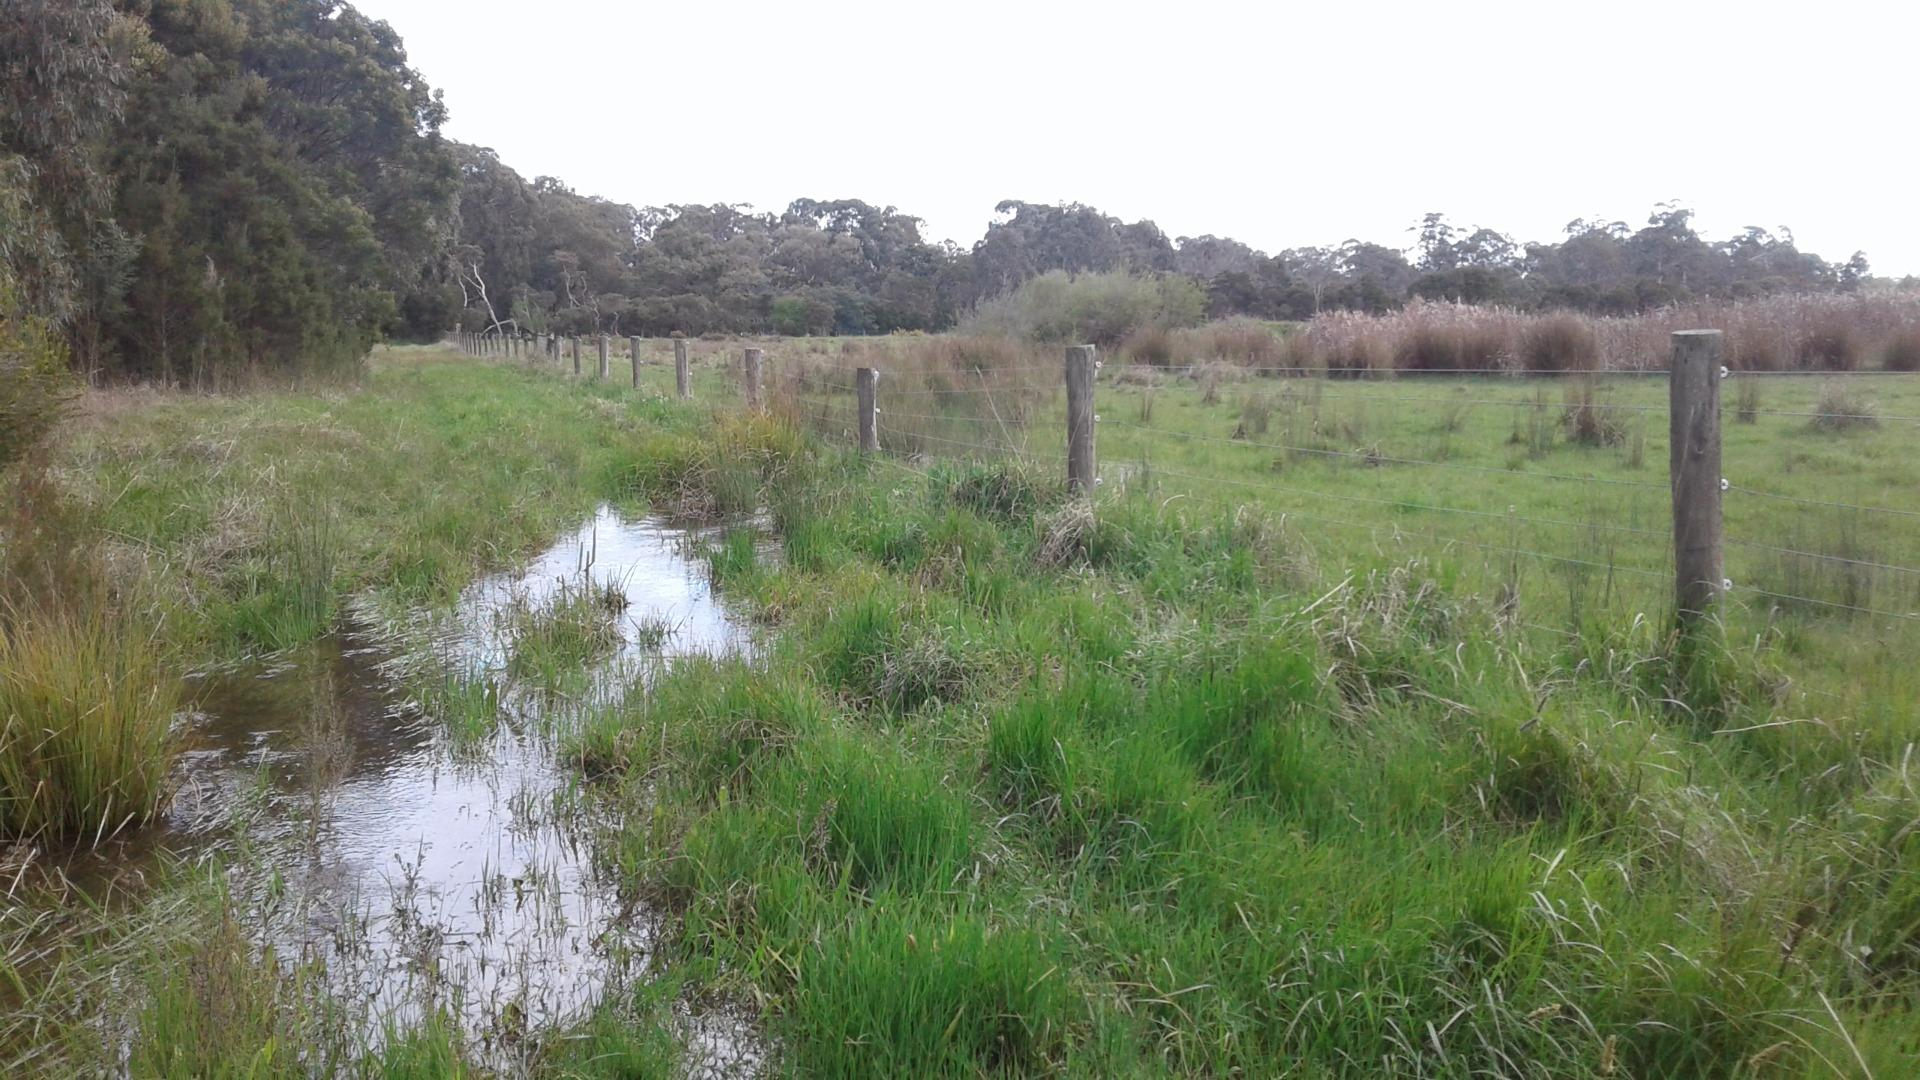 Water flowing over track to sampling site. Appeared to be coming from vegetation to the right which looks like it is surrounding a dam